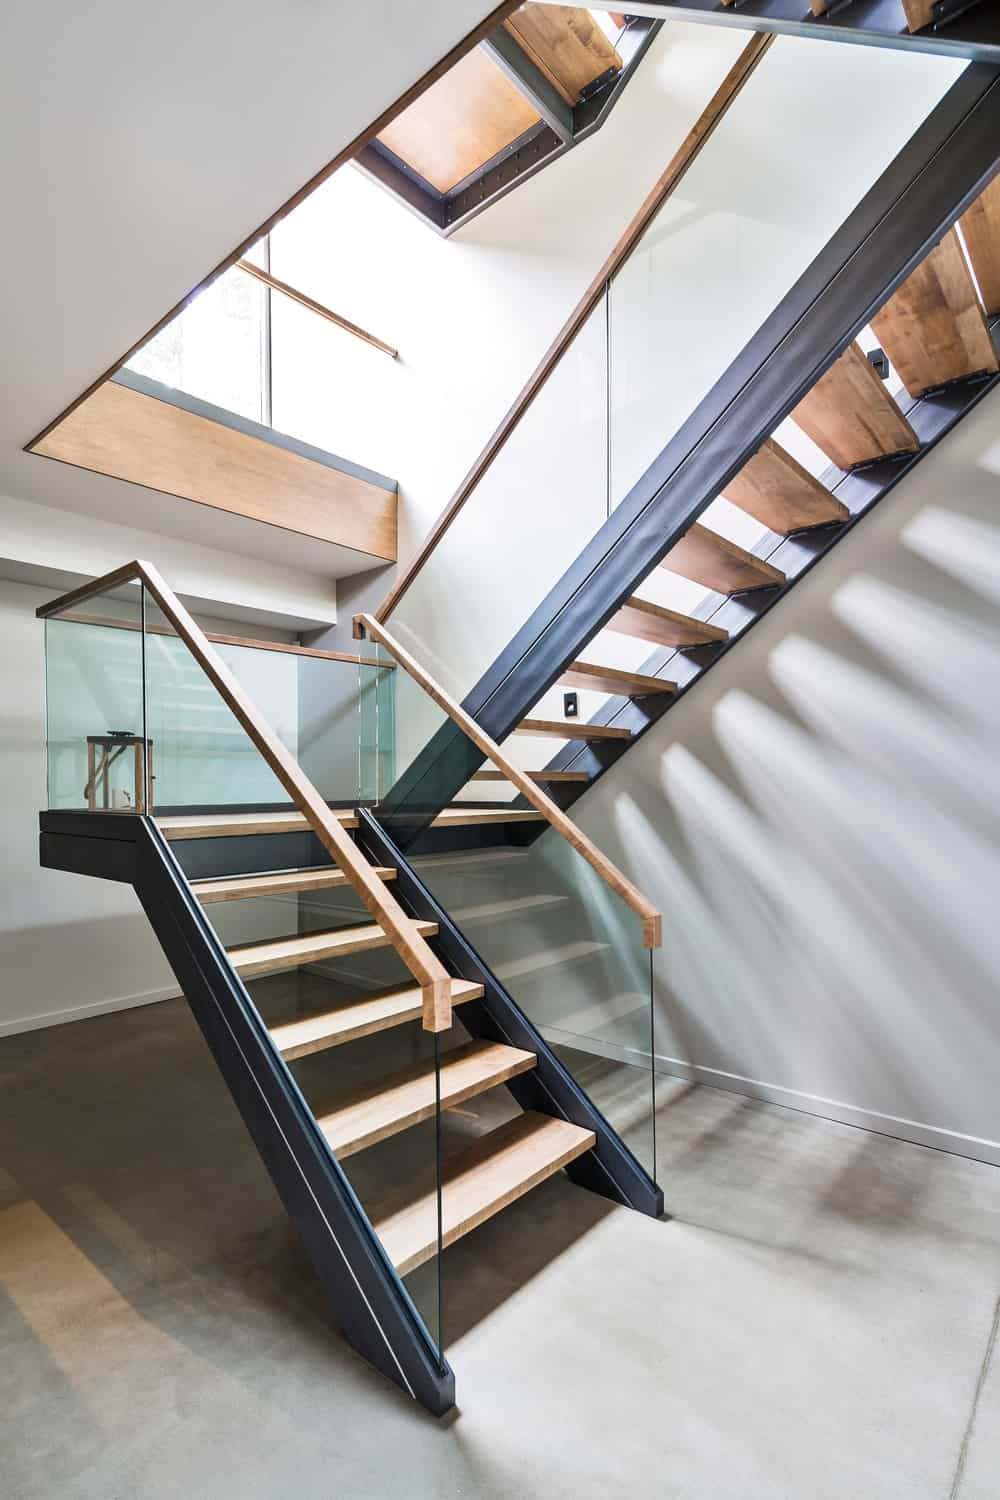 Staircase with hardwood floors and handrails. Photo Credit: Ulysse Lemerise Bouchard